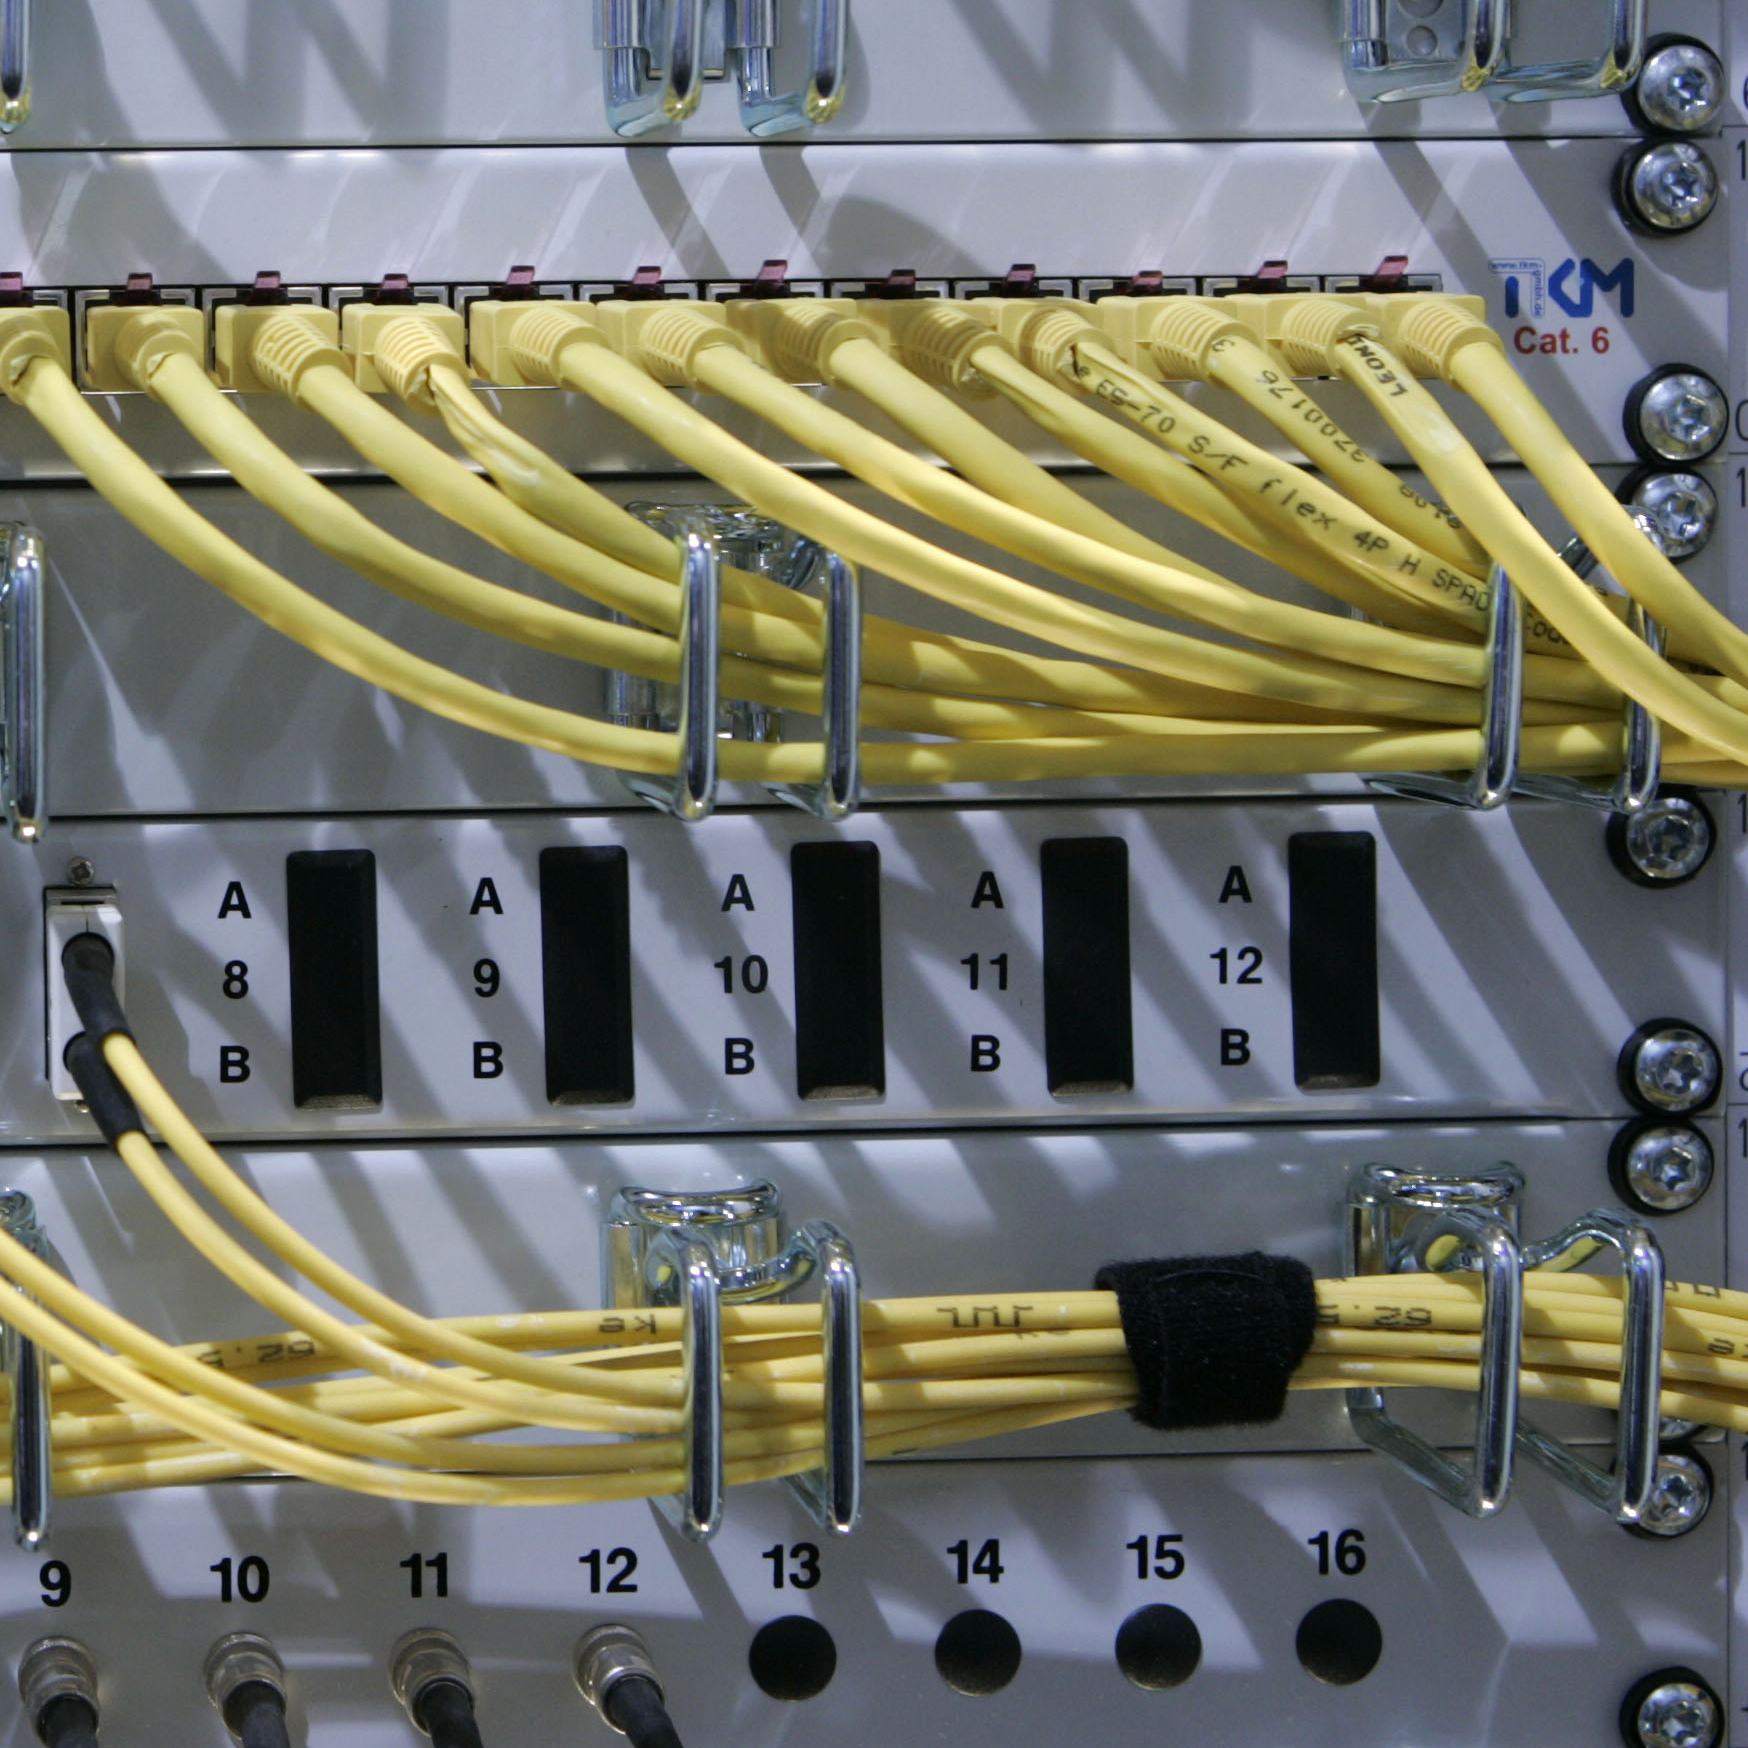 A 2008 file photo shows network cables being connected to a server.